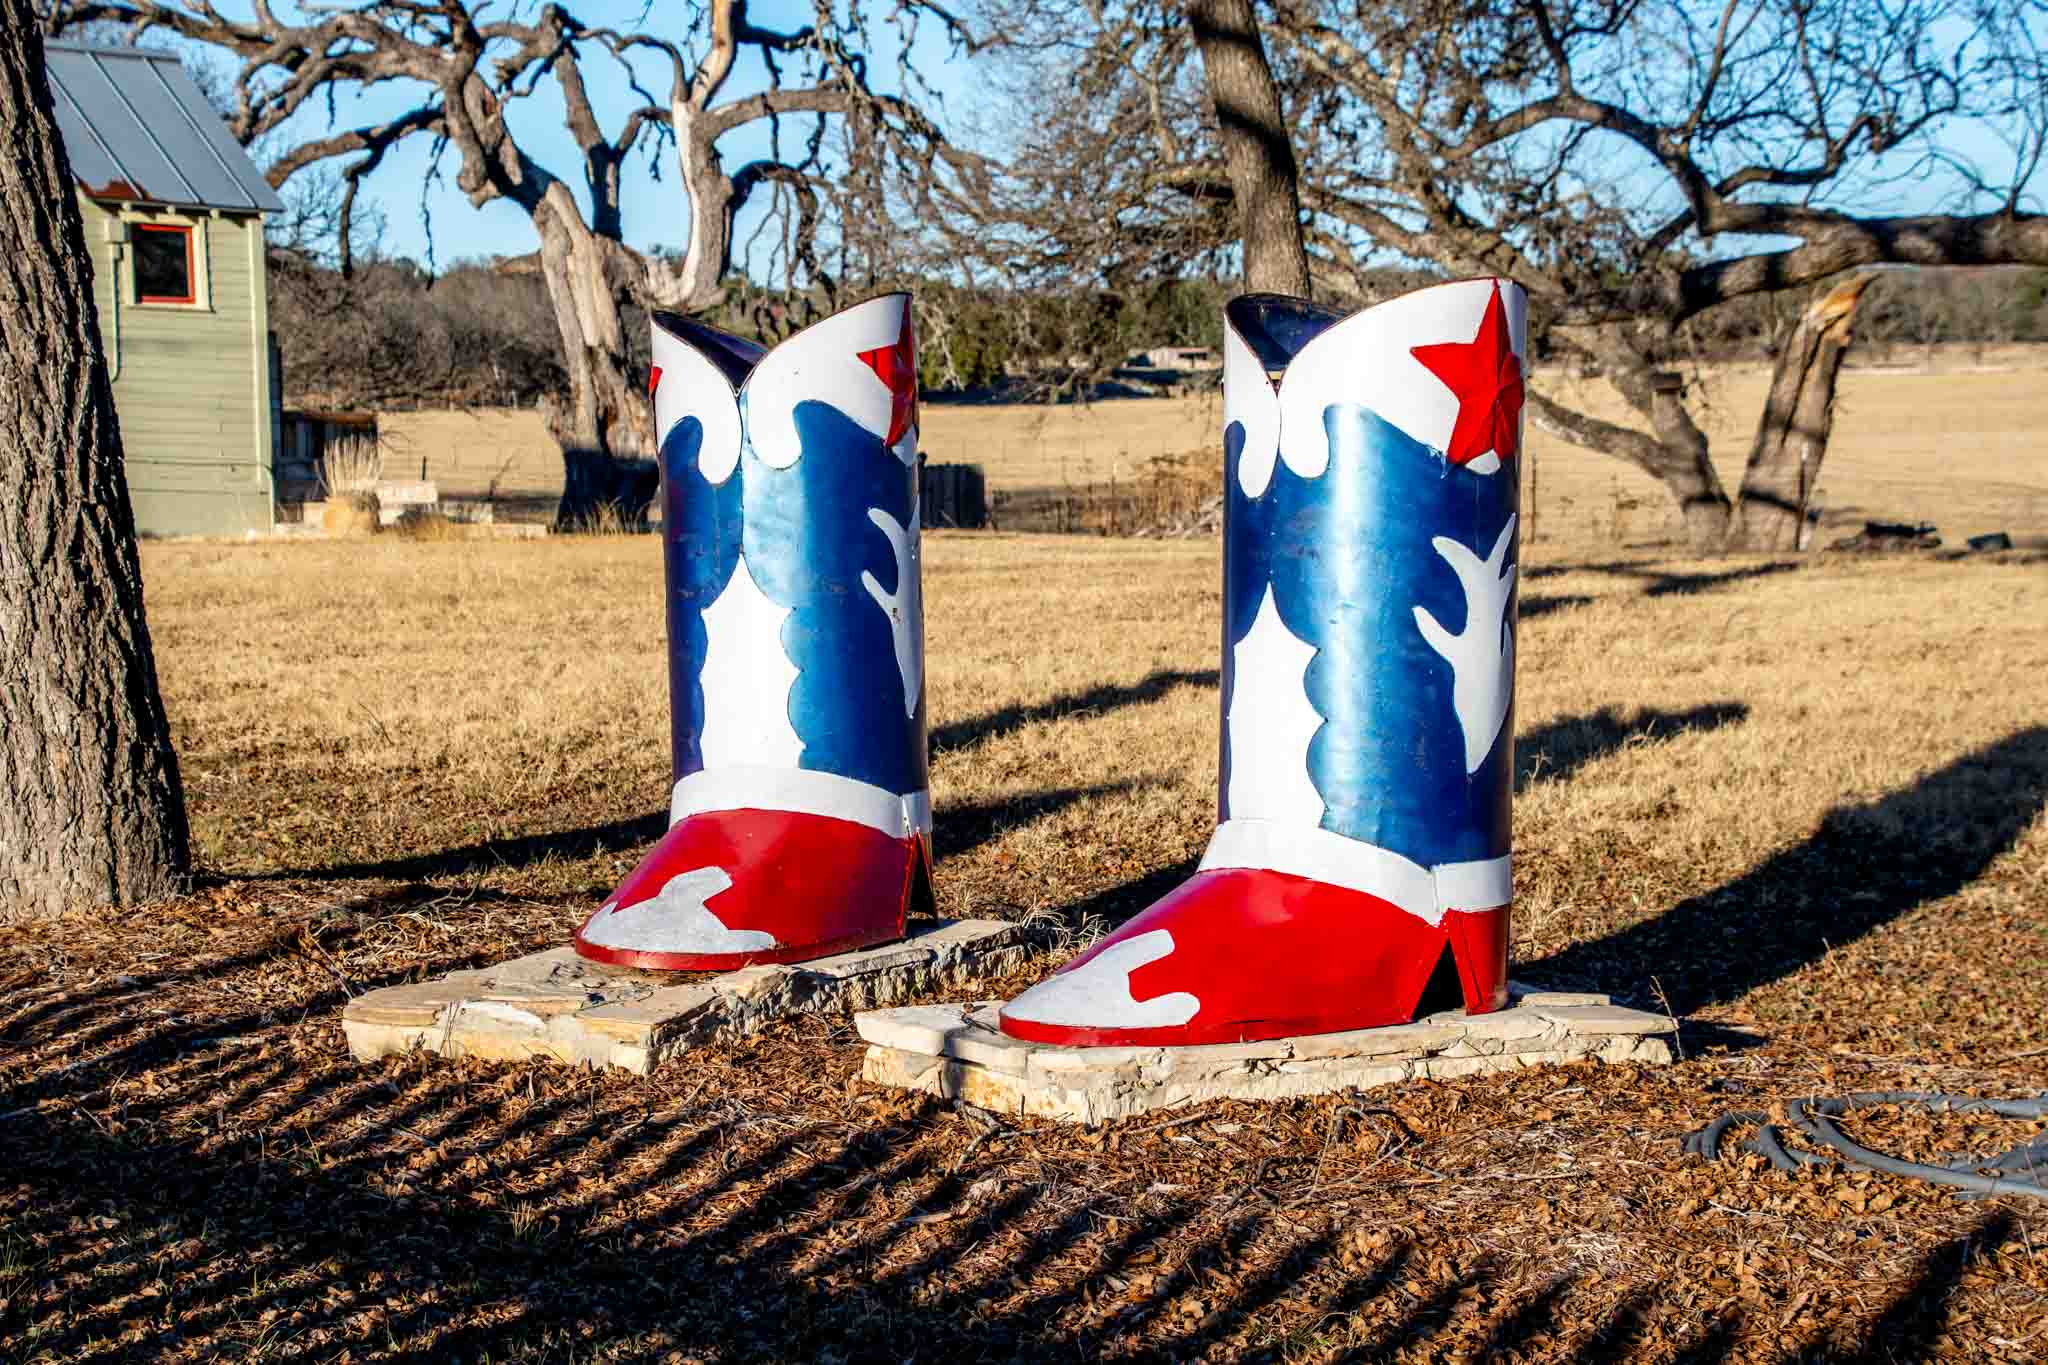 Large red, white, and blue cowboy boots